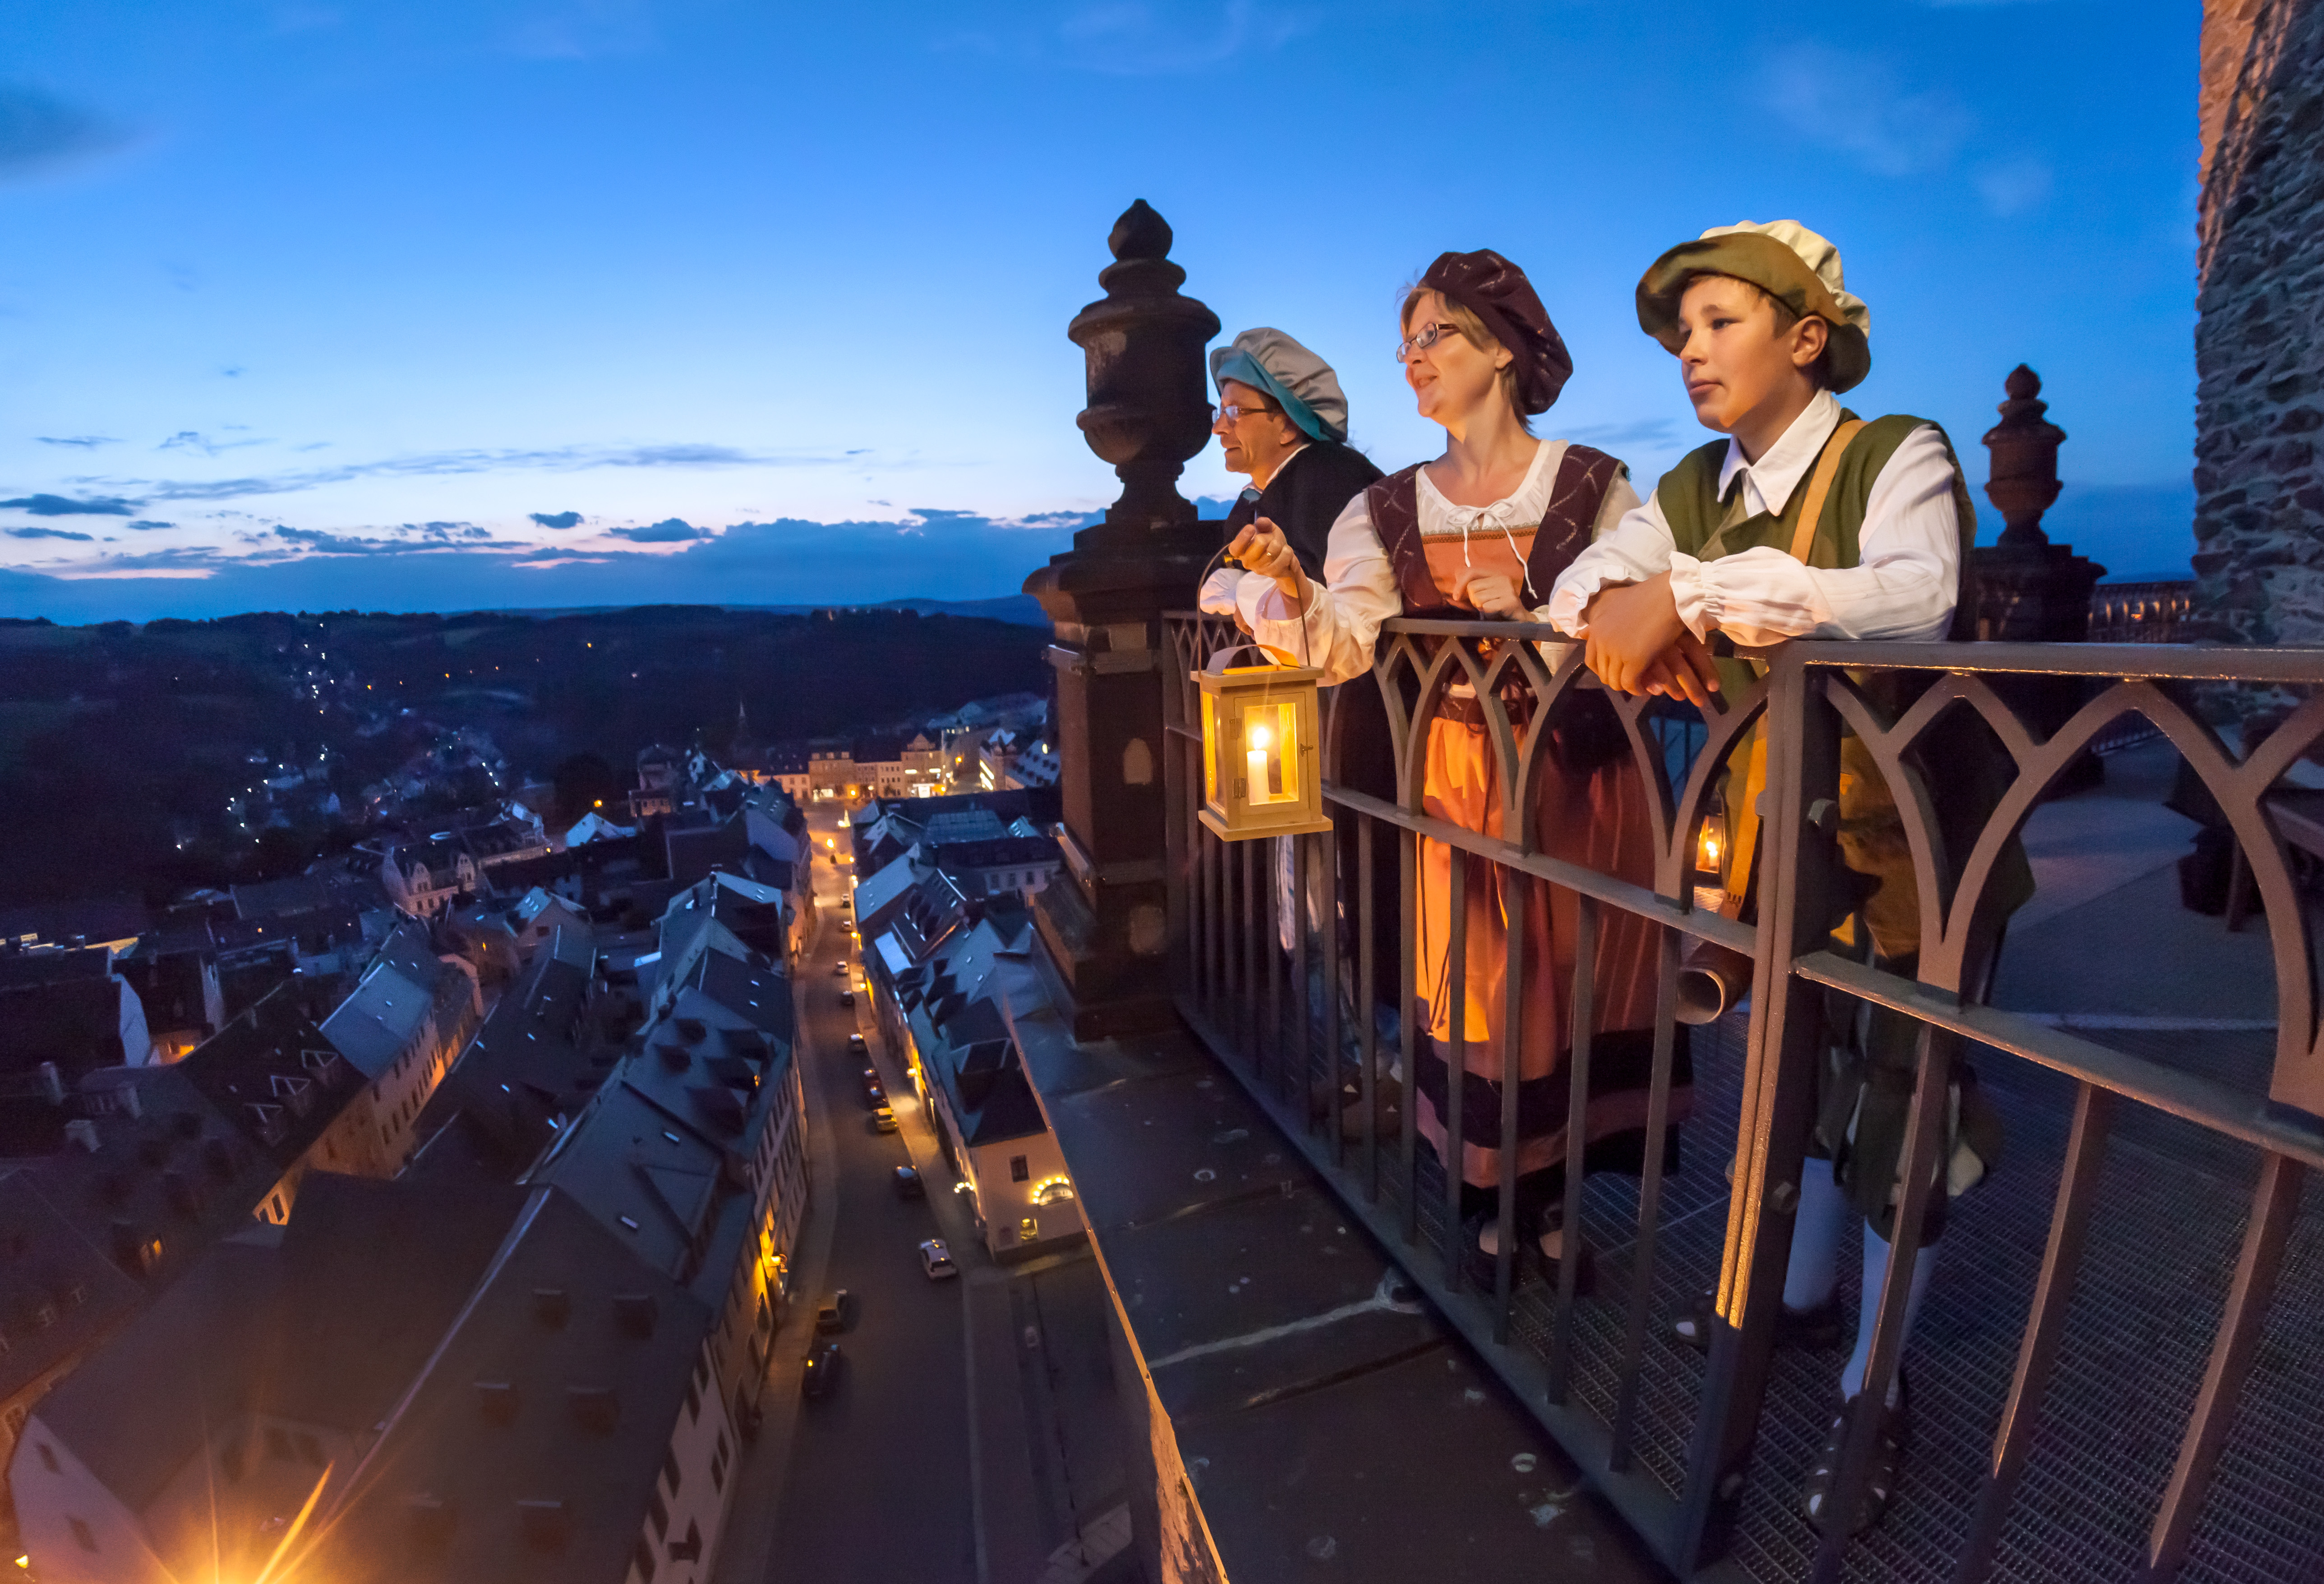 Story about love annaberg germany